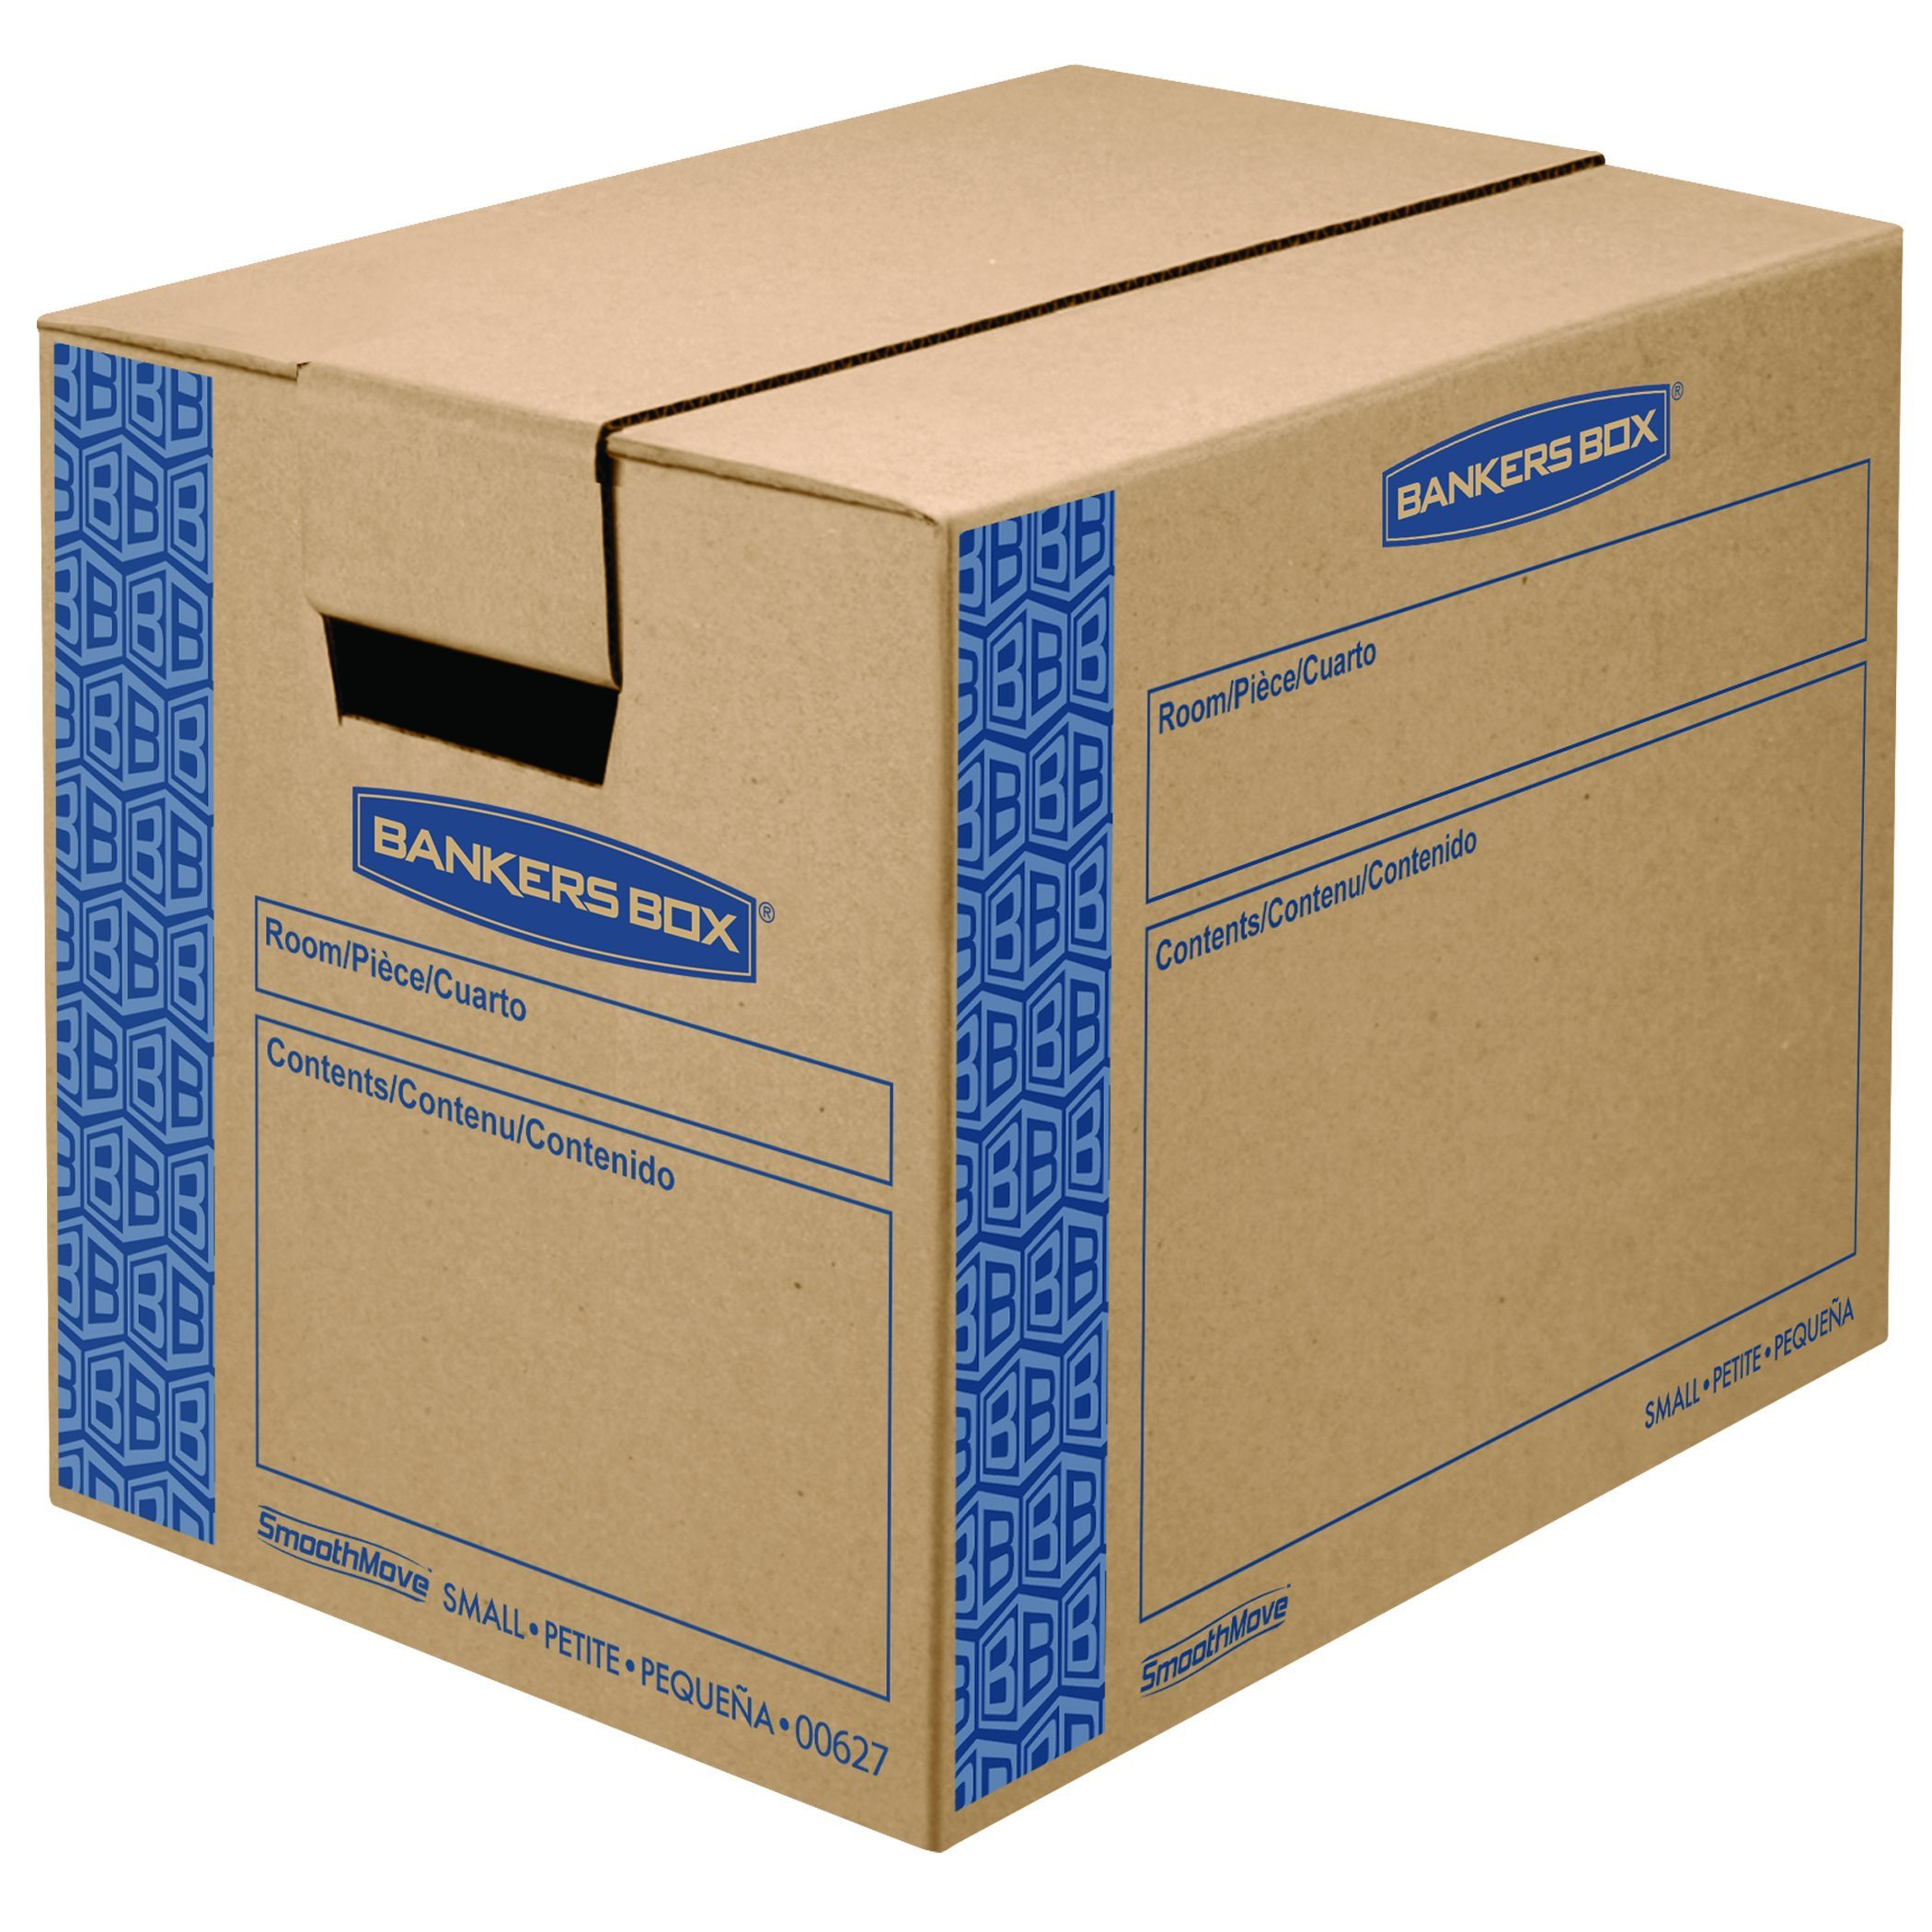 Bankers Box SmoothMove Prime Moving Boxes, Tape-Free, FastFold Easy Assembly, Handles, Reusable, Small, 16 x 12 x 12 Inches, 10 Pack (0062701)